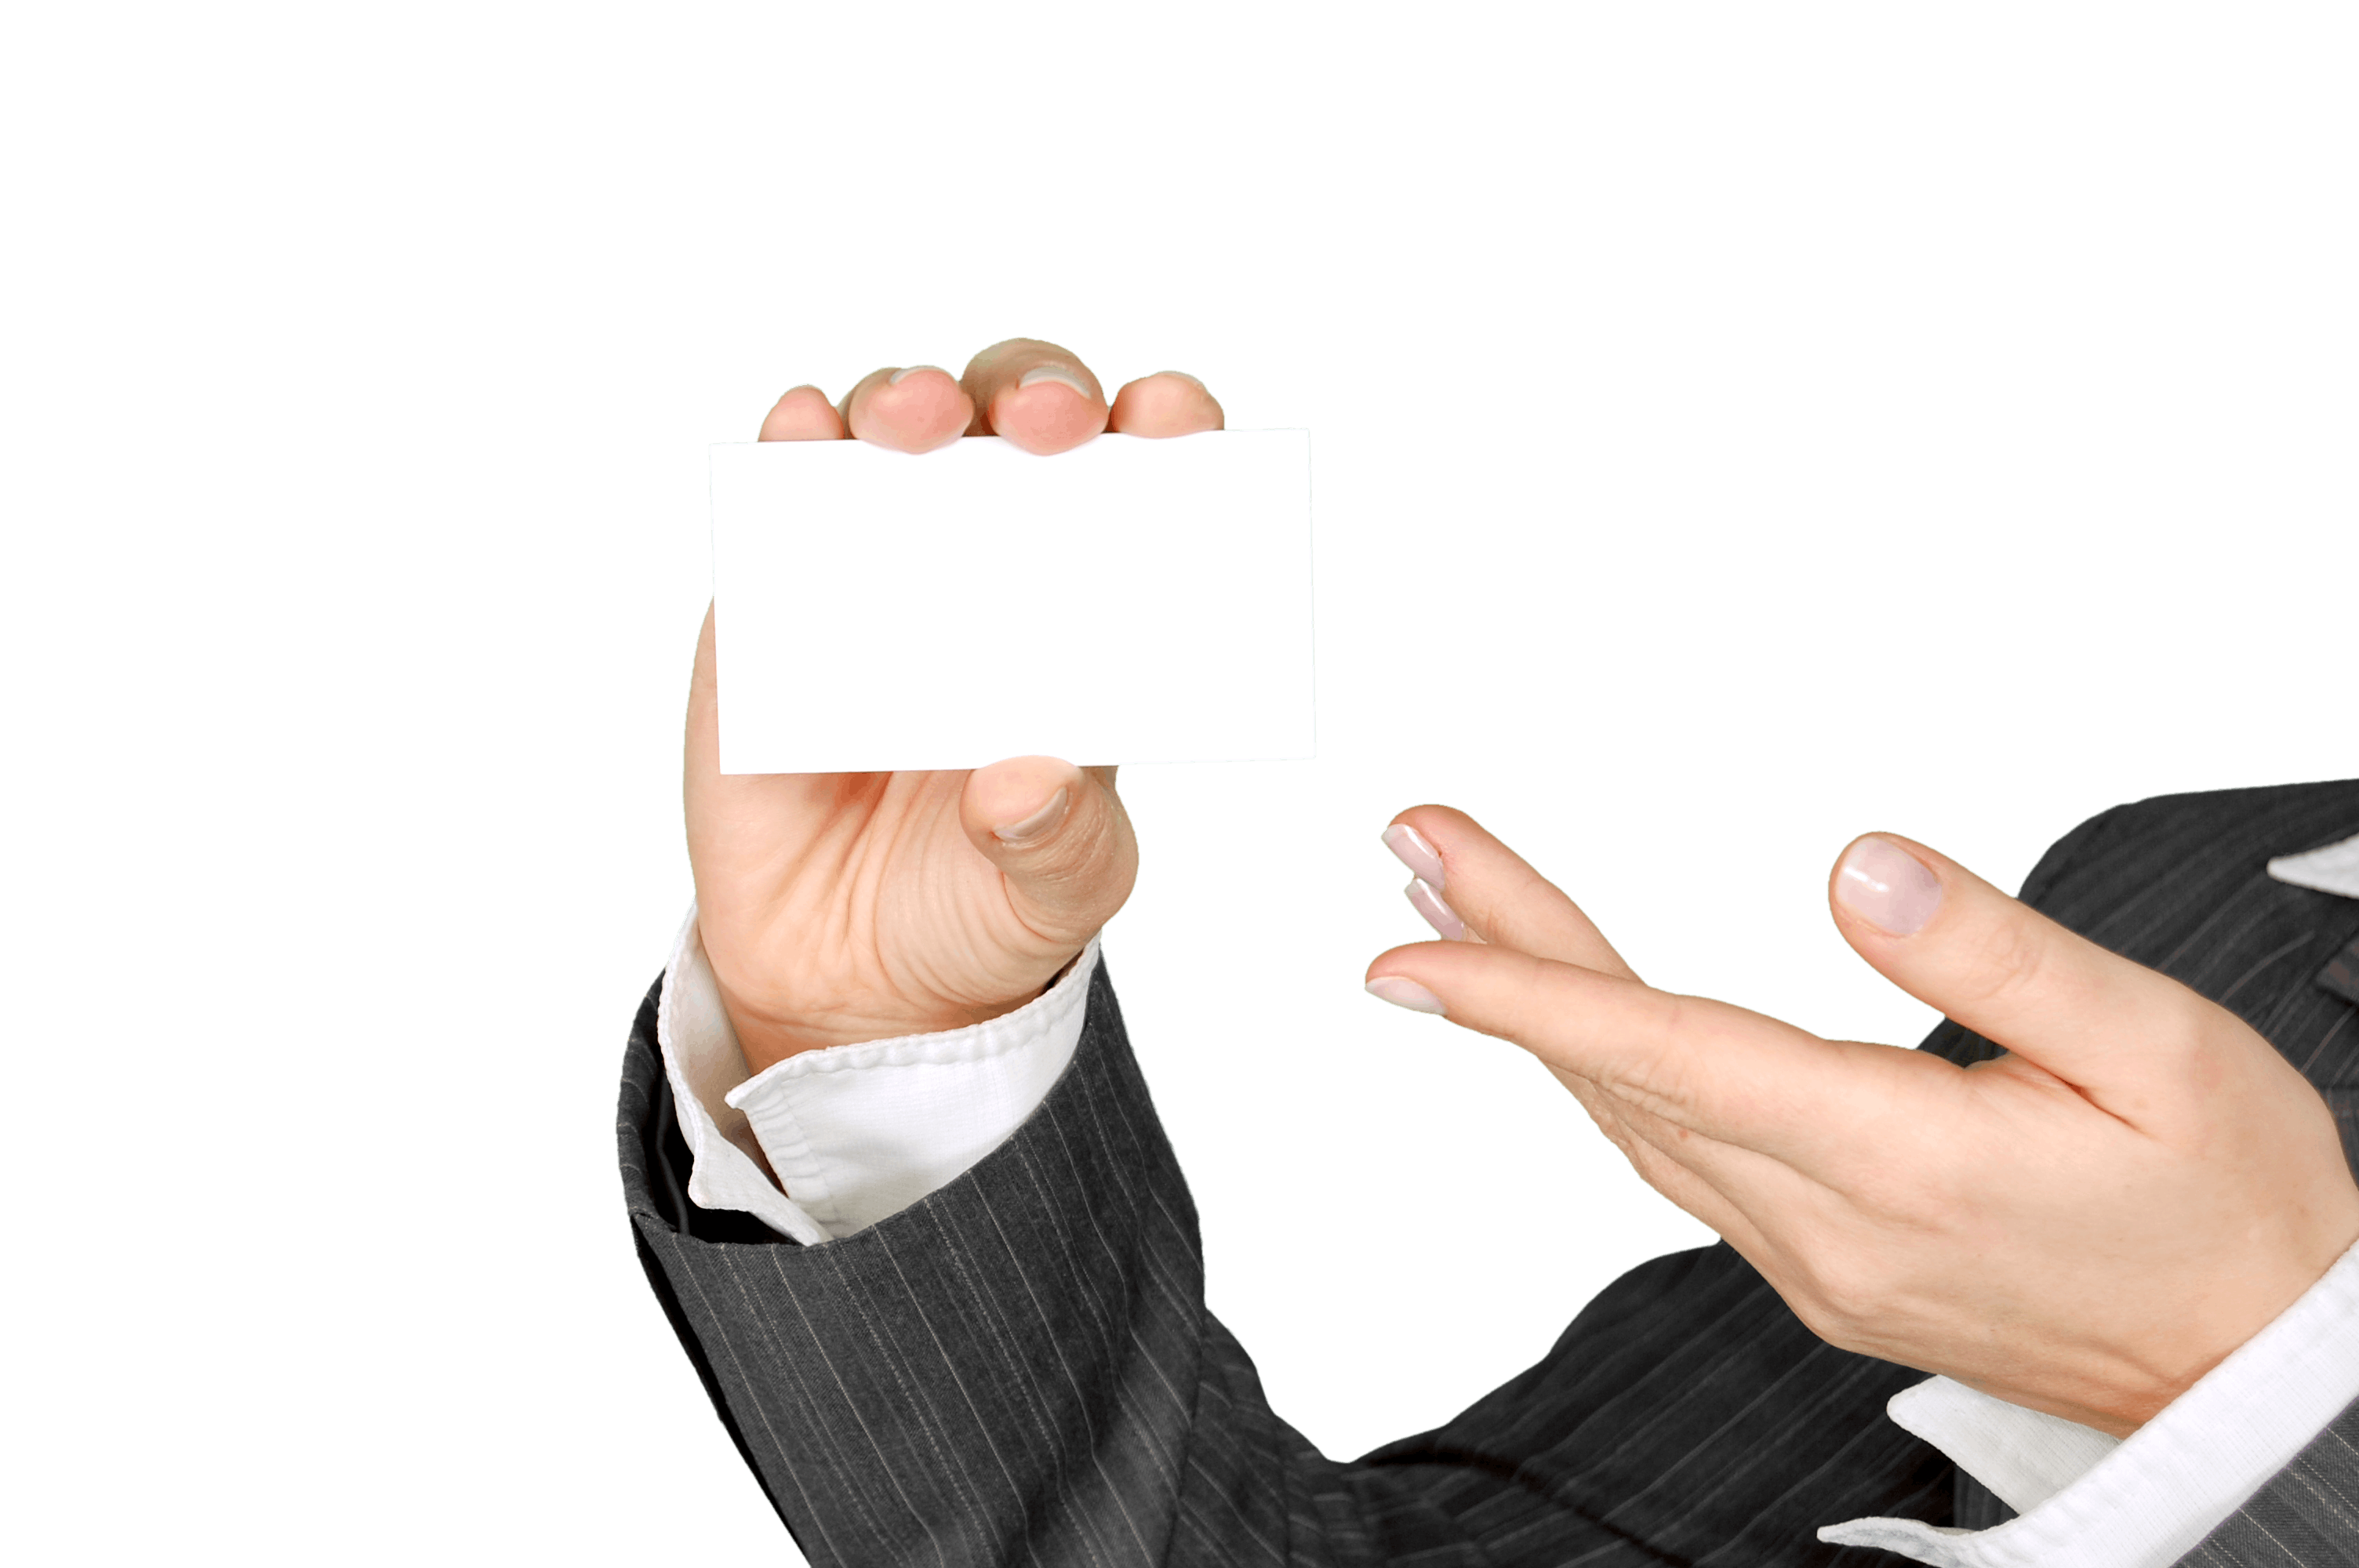 Person Showing White Piece of Paper